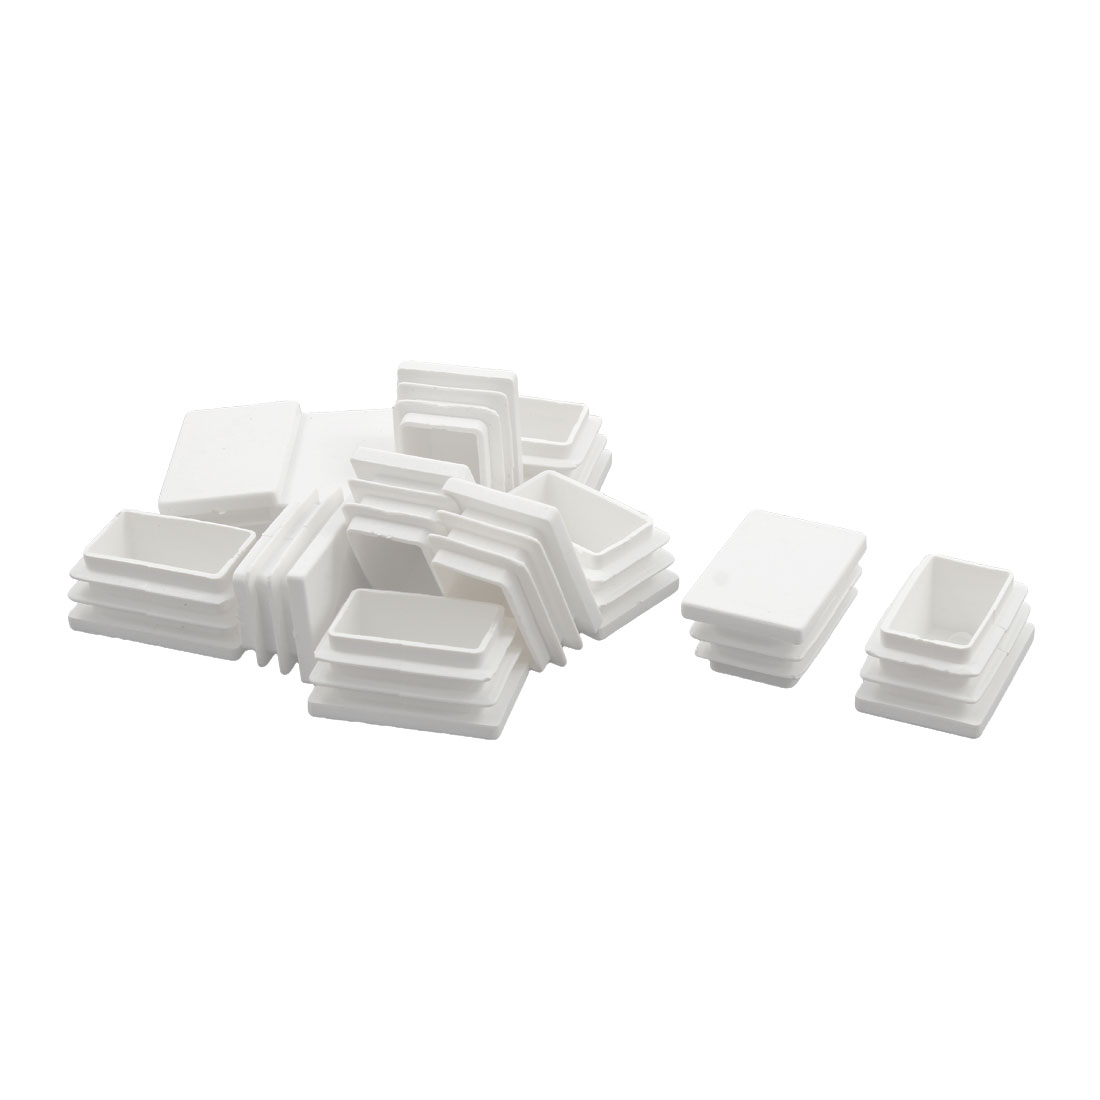 Home Plastic Rectangle Shaped Chair Foot Cover Tube Insert White 25 x 38mm 20pcs